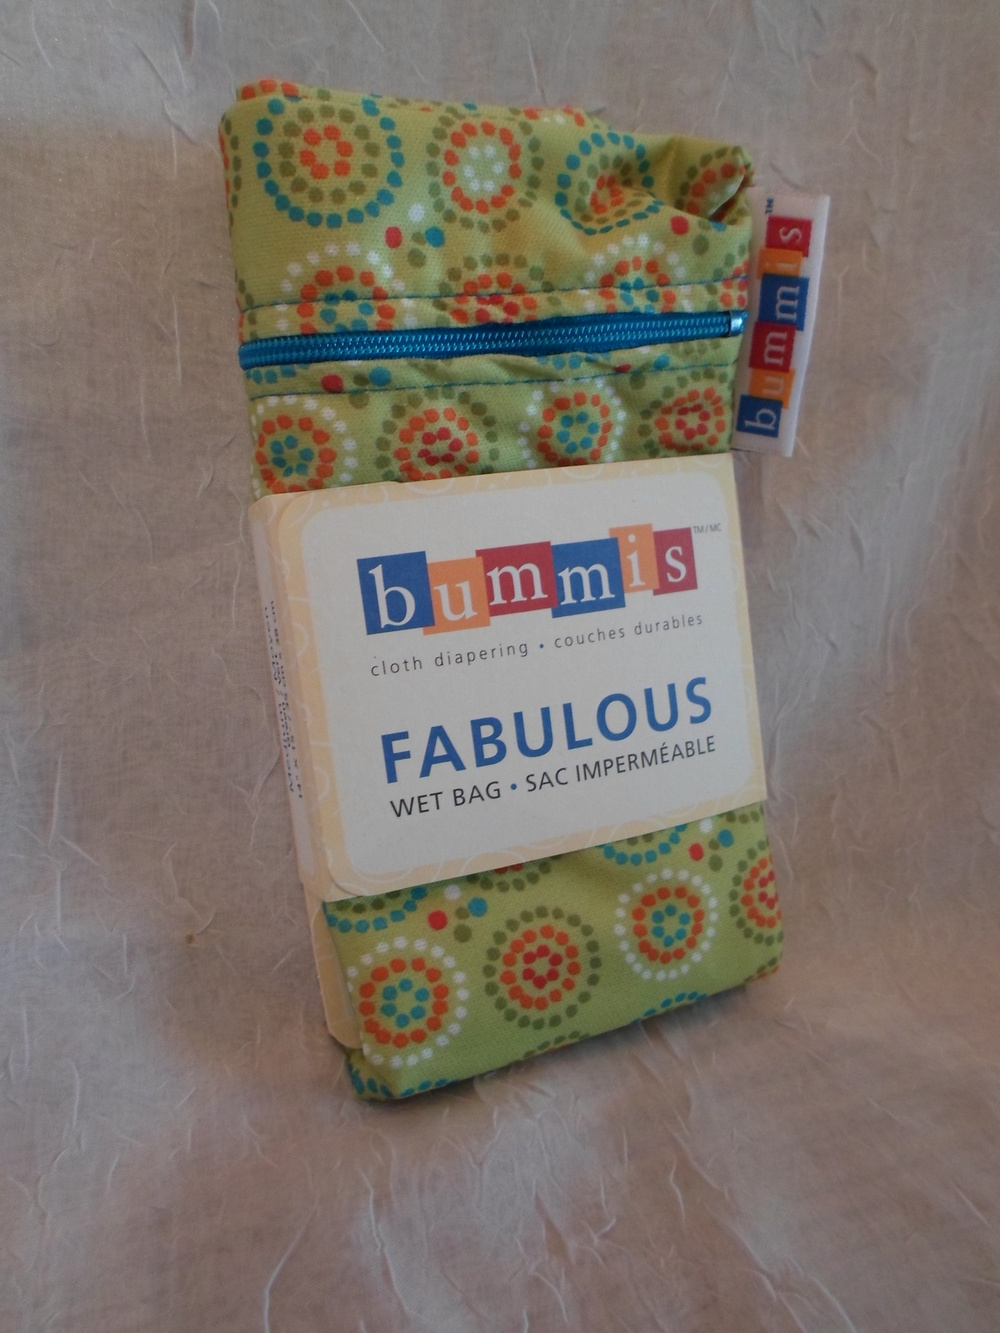 Bummis Small Wet Bag in green $14.95 Wants 1 - PURCHASED